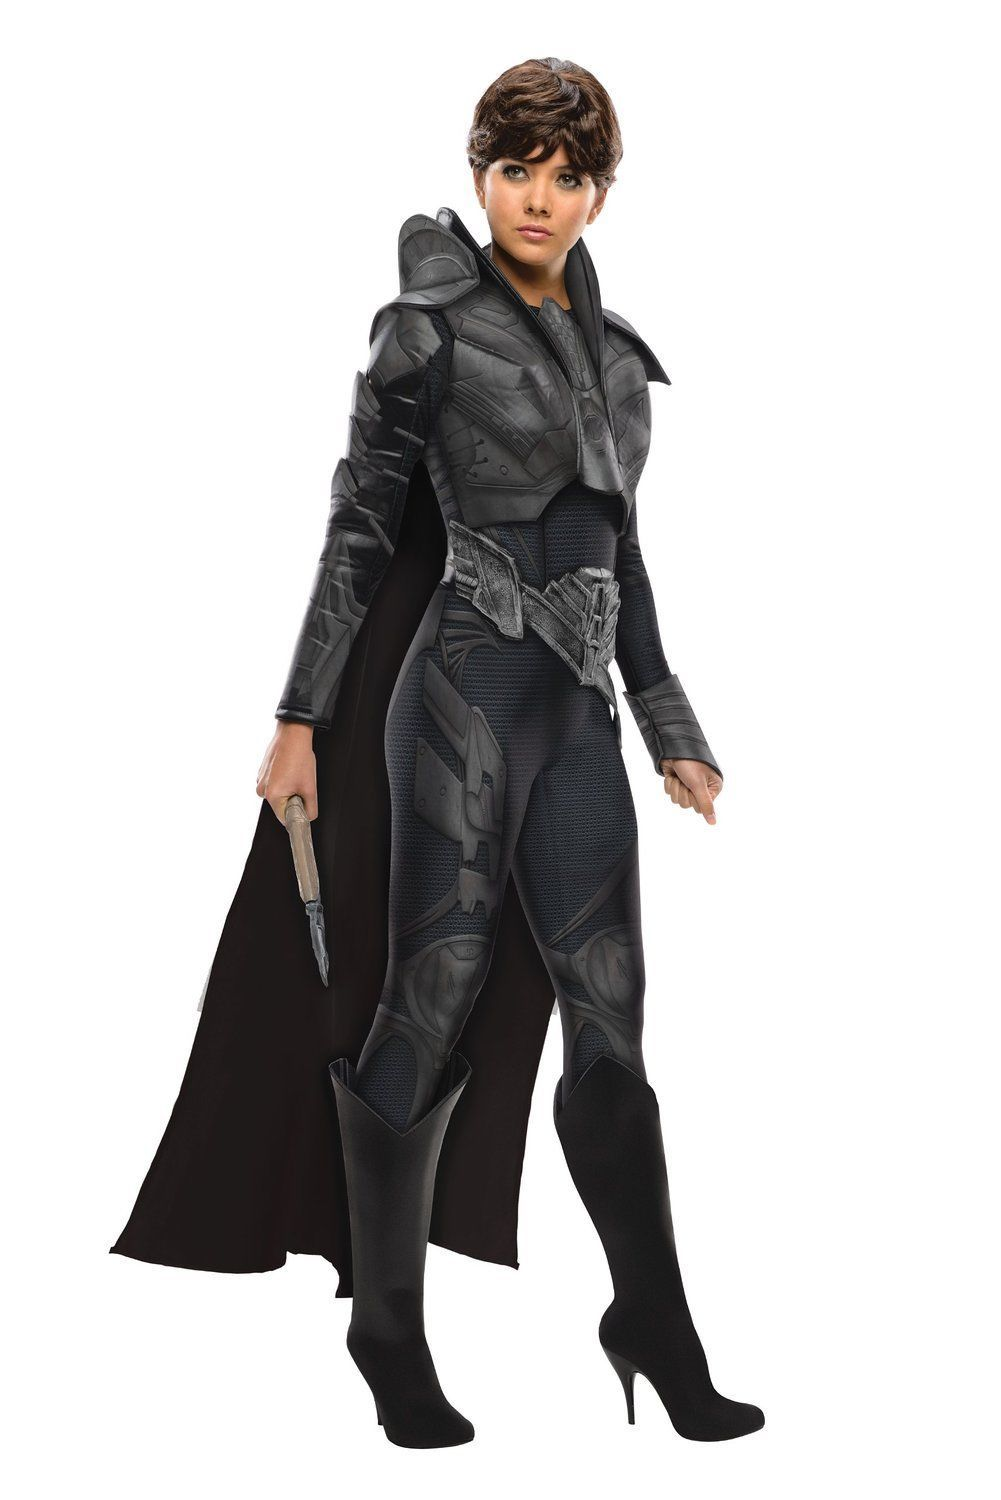 Image 1 of Secret Wishes Superman Man of Steel Black Faora Adult Ladies Costume w/Cape - M